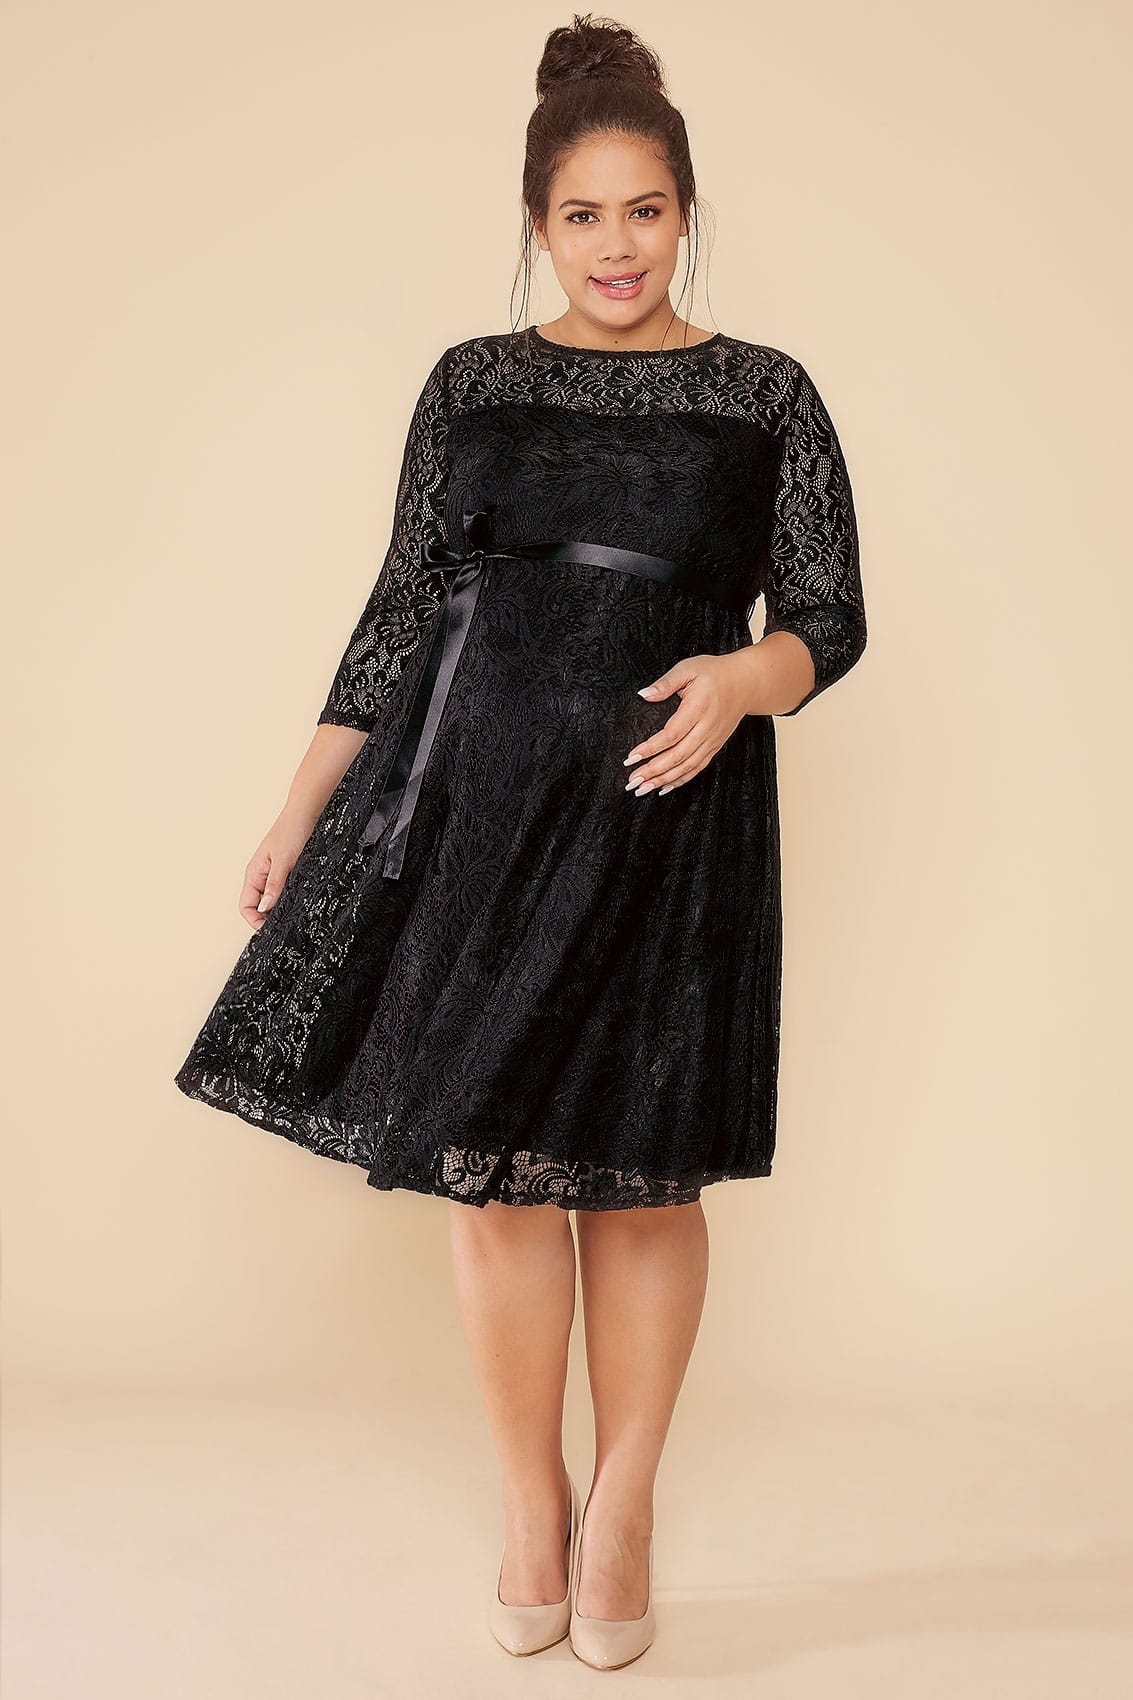 Bump it up maternity black lace sleeved skater dress with ribbon bump it up maternity black lace sleeved skater dress with ribbon tie ombrellifo Choice Image